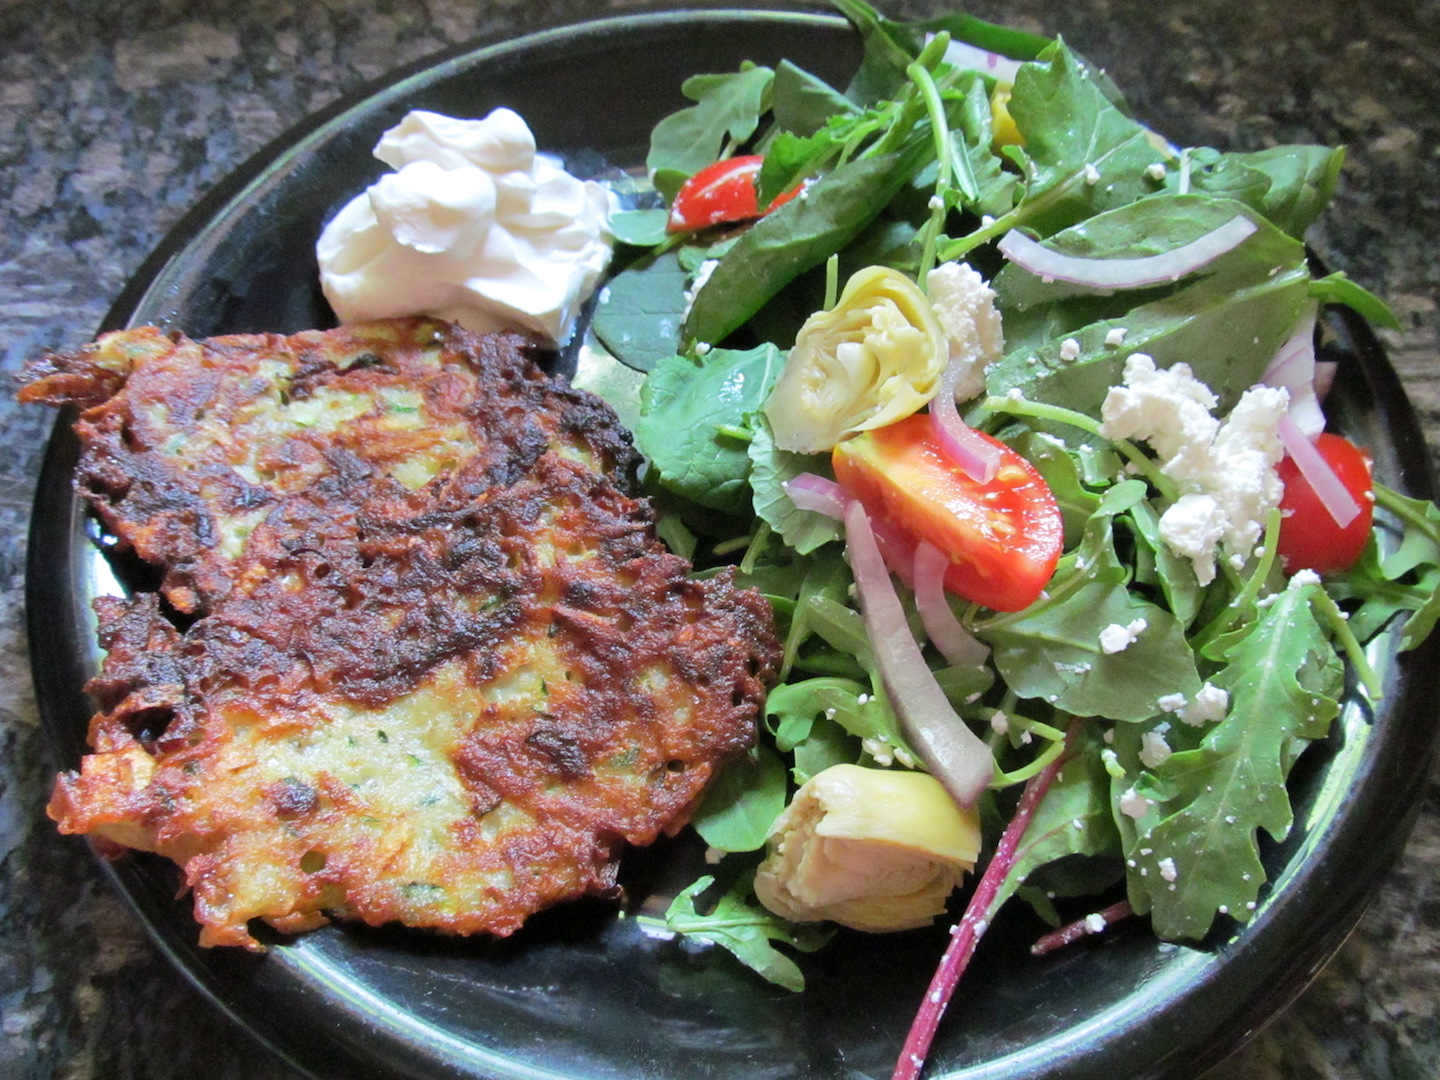 Zucchini Latkes from Practical Self-Reliance; photo used with permission.